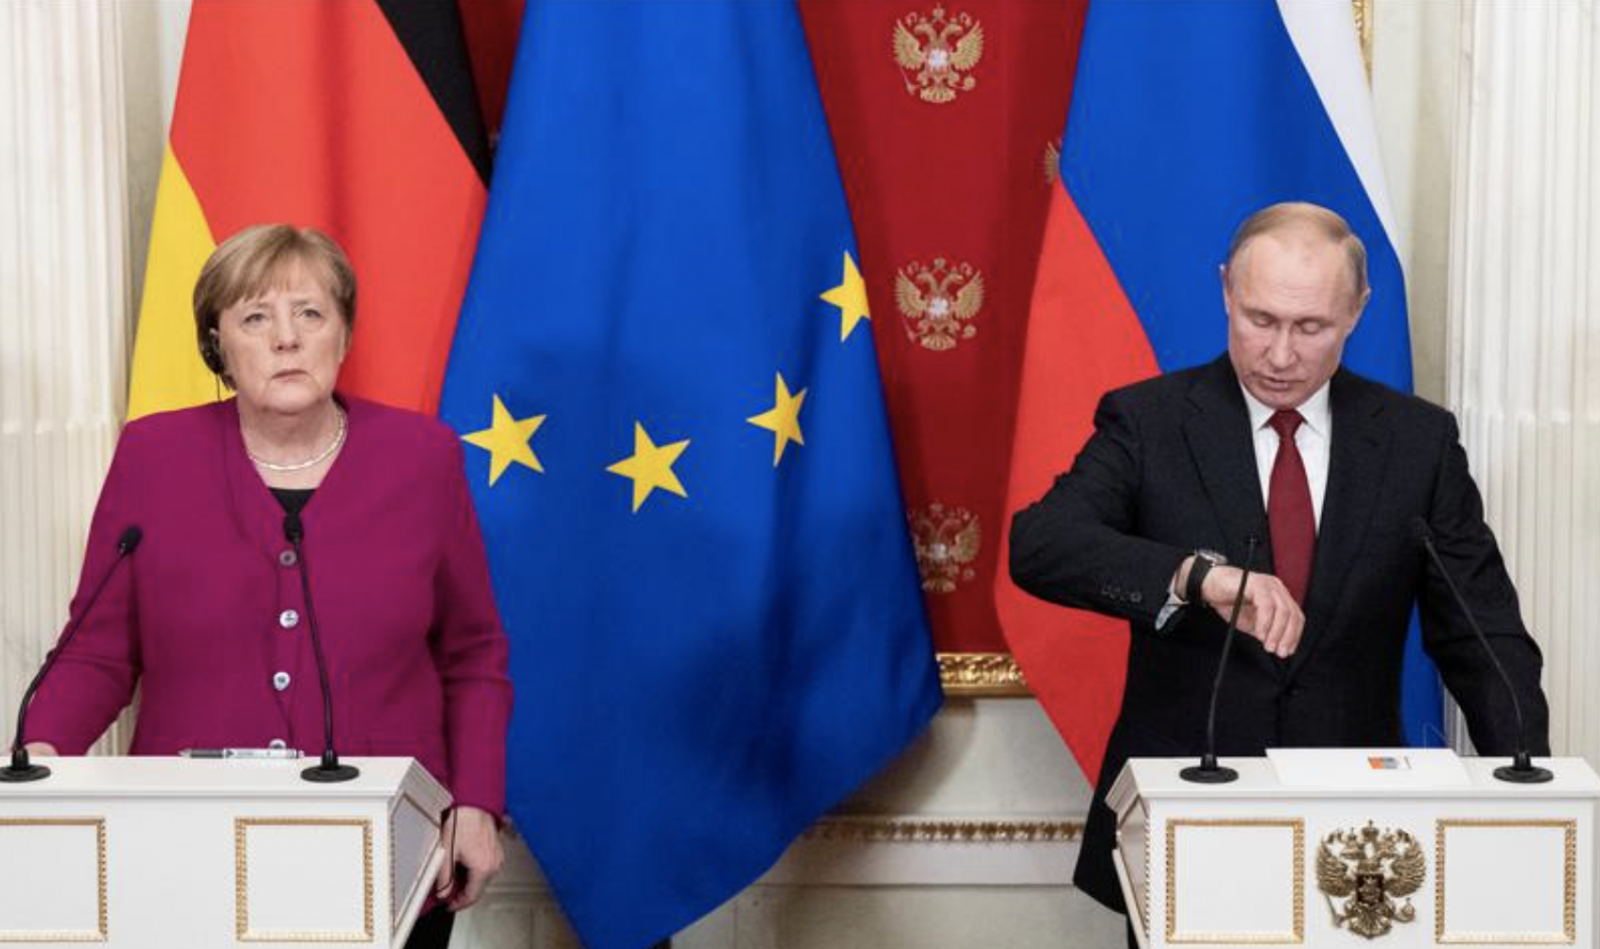 Germany is main target of Russian disinformation, EU says